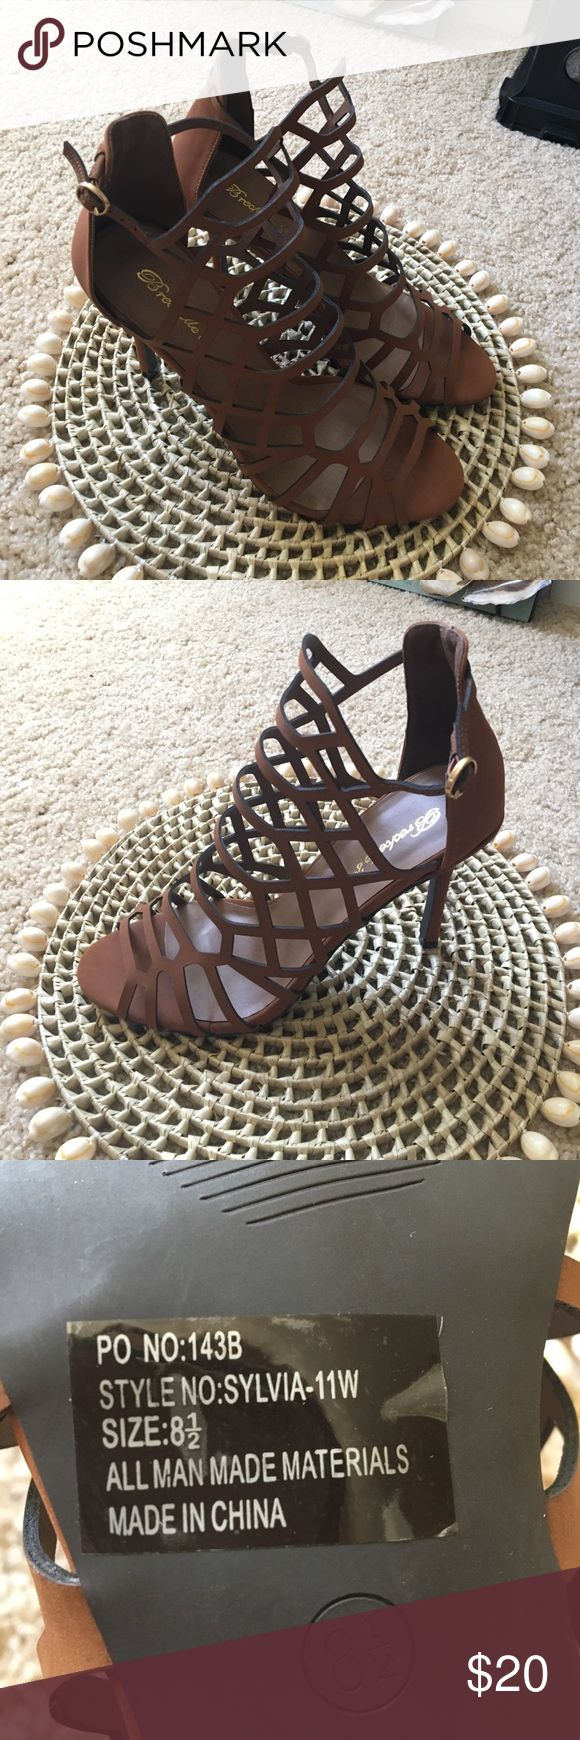 Strappy heels! Brown strappy high heels, NWOT!! Never worn, just tried on. Size 8 1/2! Breckelles Shoes Heels